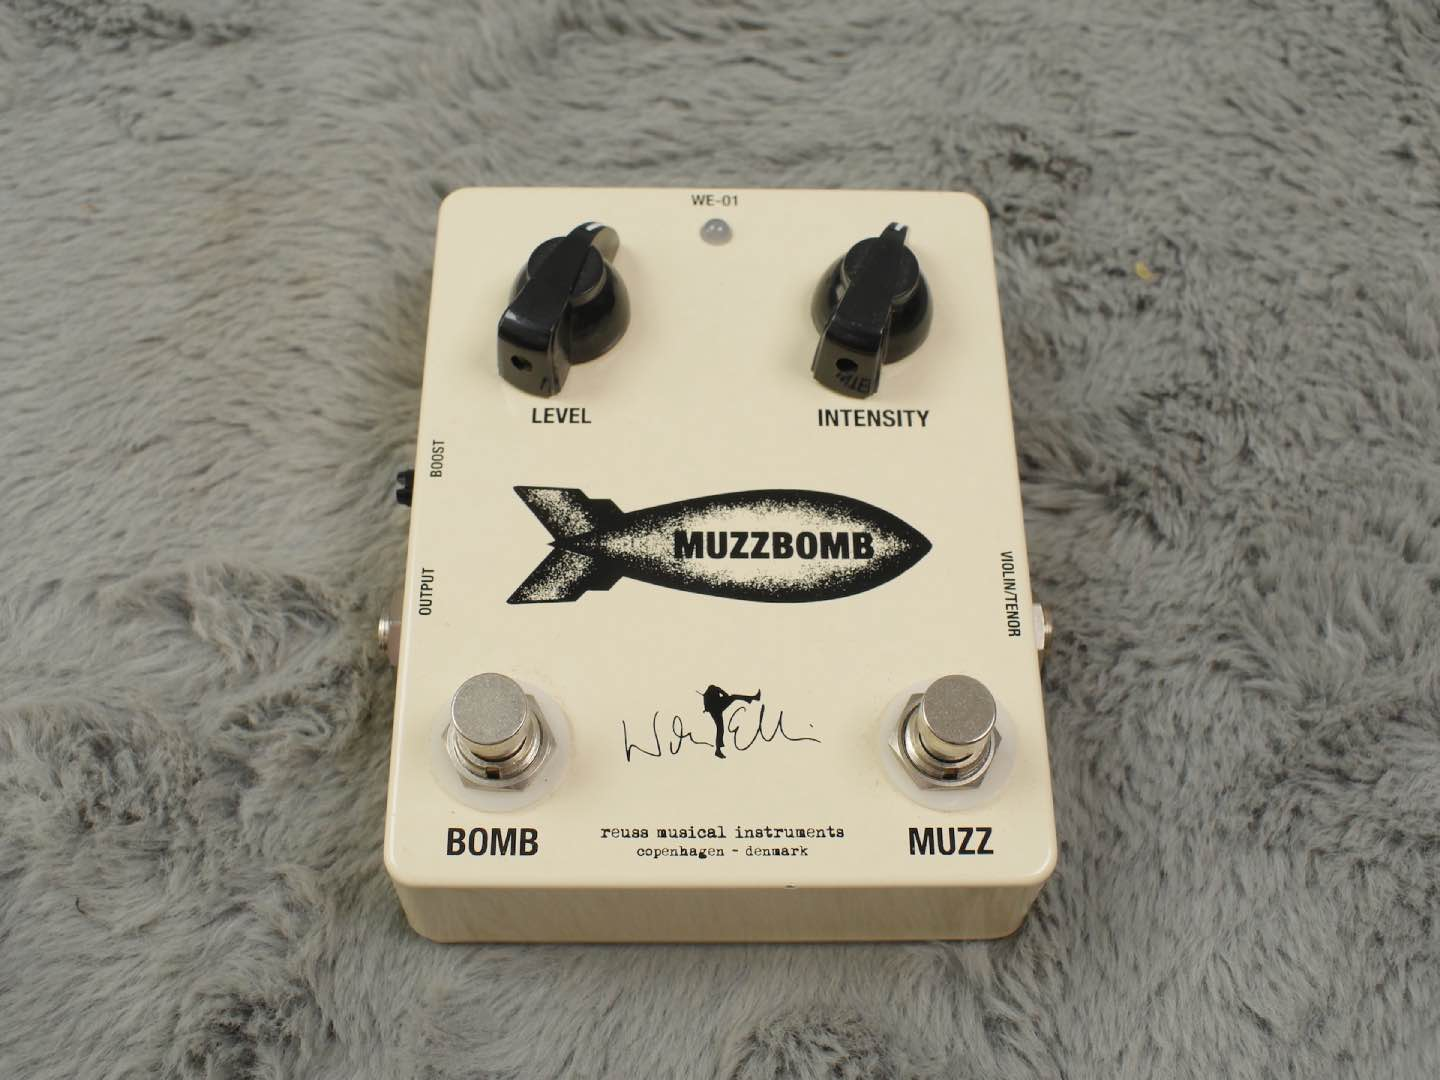 2016 Reuss Musical Instruments WE-01 'Muzzbomb'